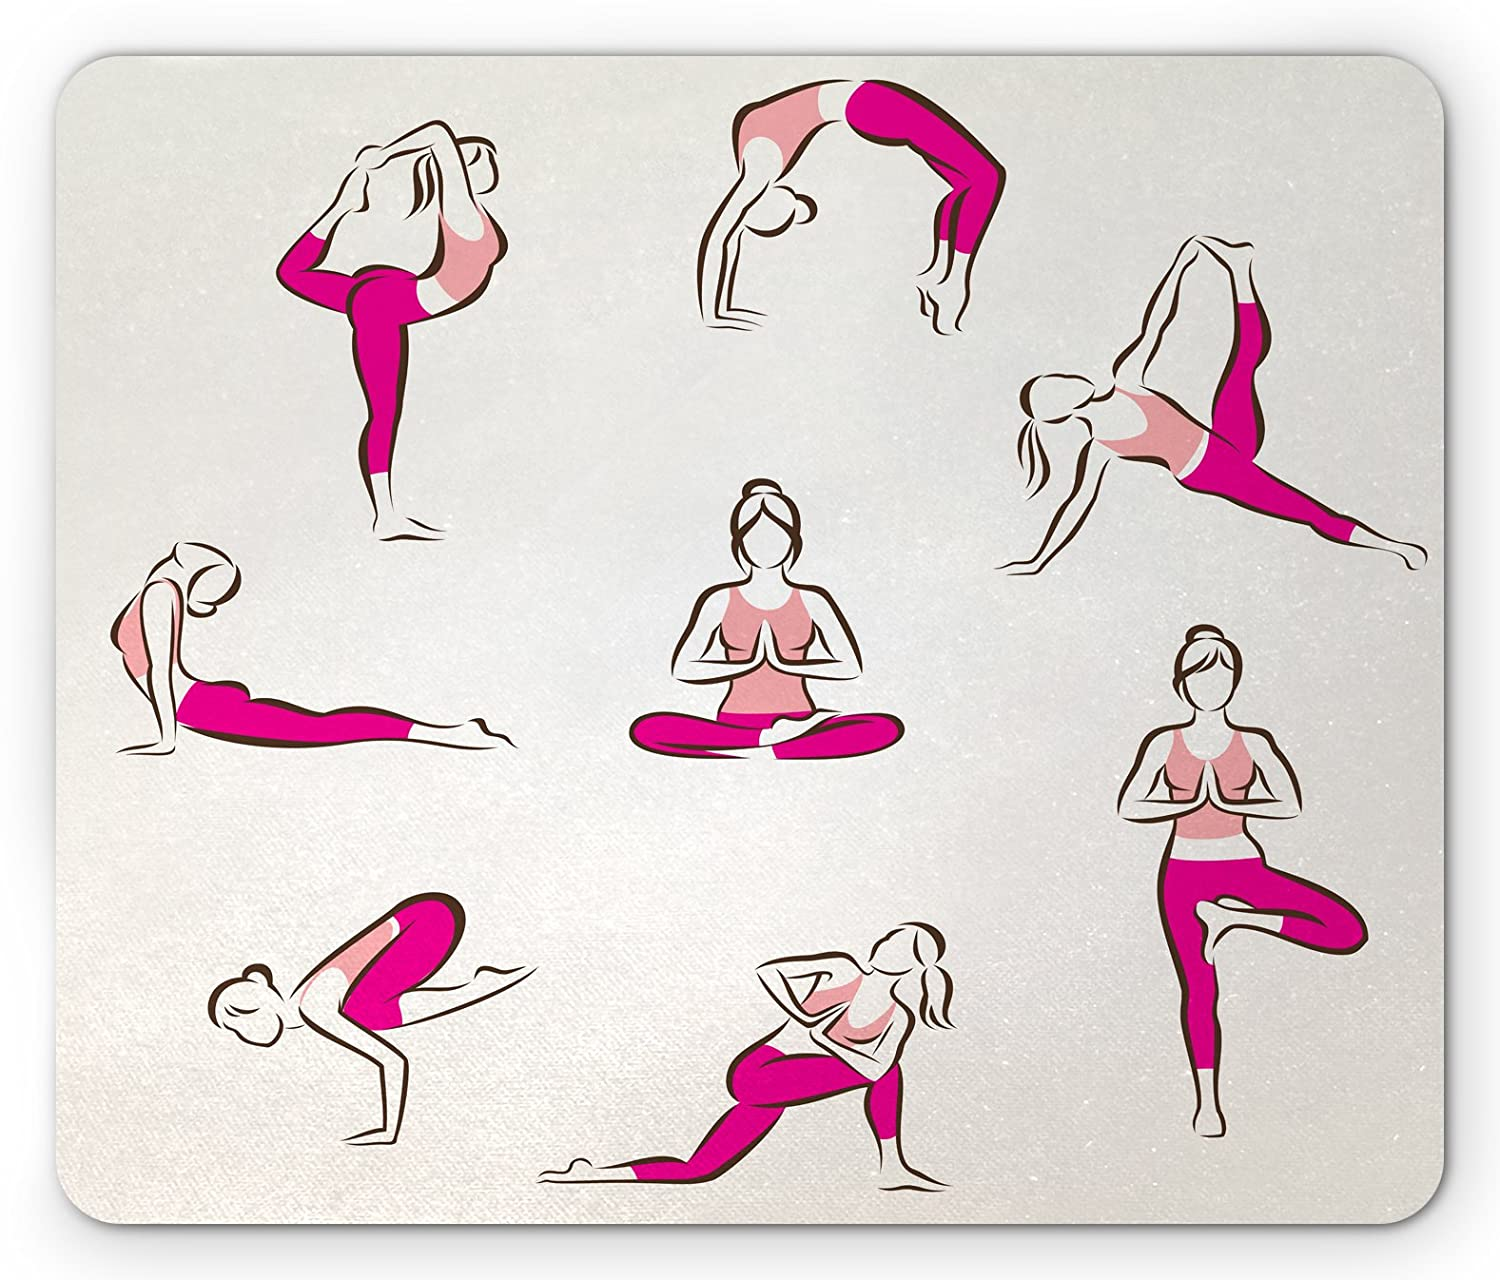 Amazon.com: Ambesonne Yoga Mouse Pad, Yoga and Pilates Poses ...